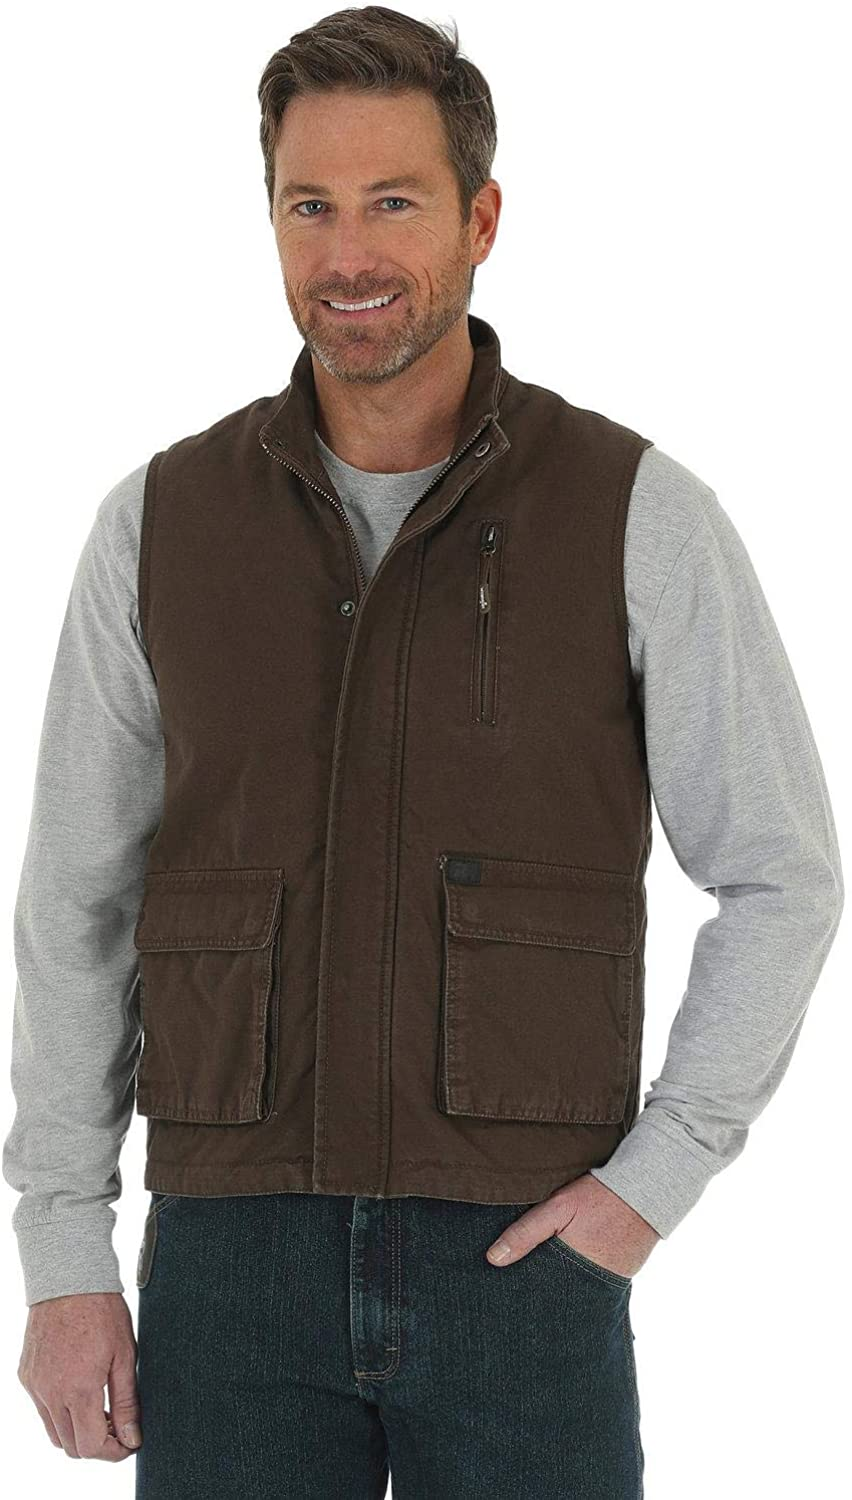 Wrangler Men's Riggs Foreman Work Vest Big and Tall Brown 2X